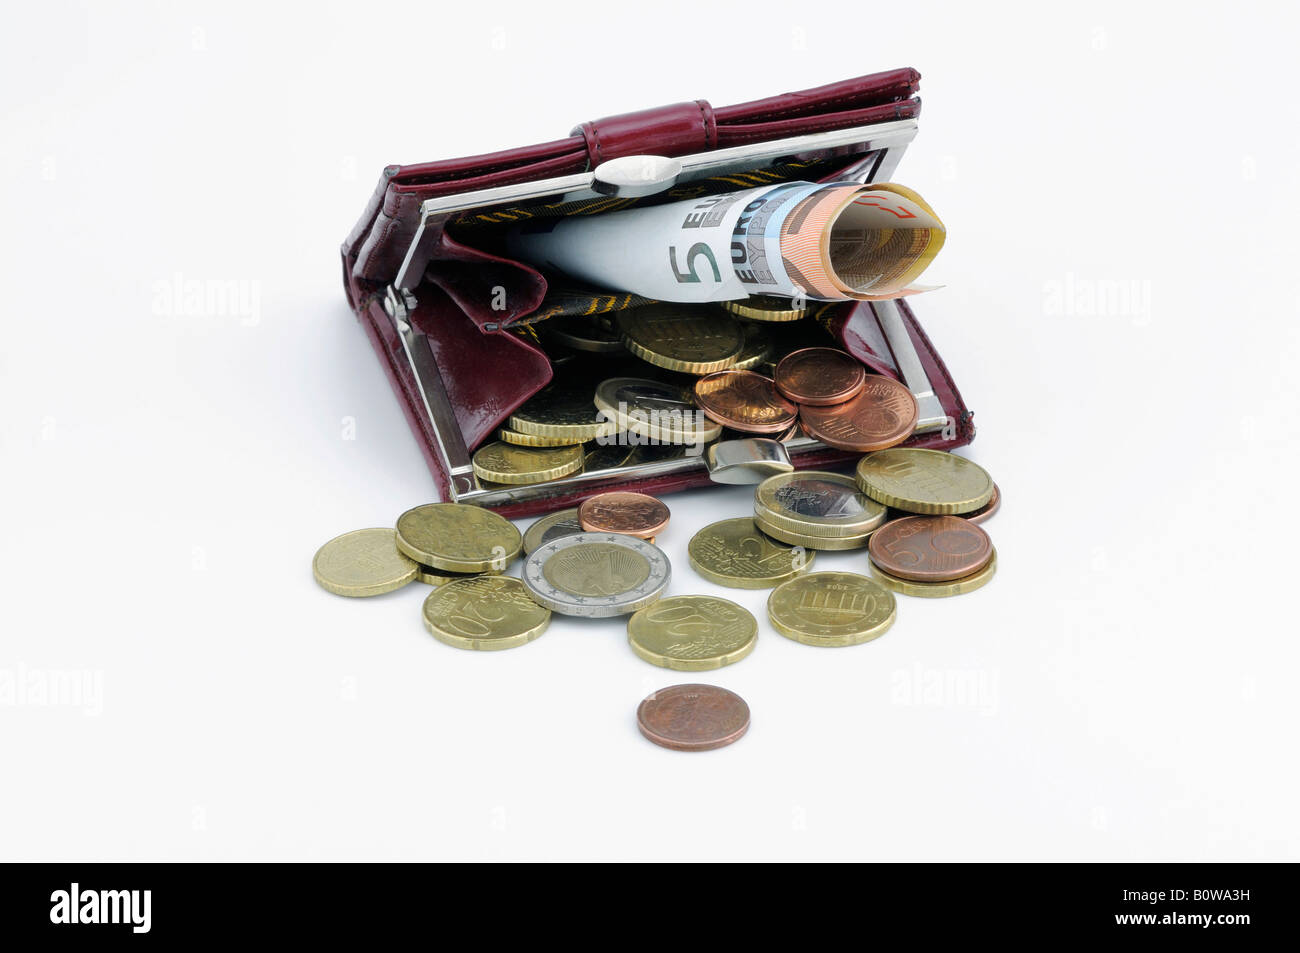 Red change purse filled with Euro coins and bills - Stock Image